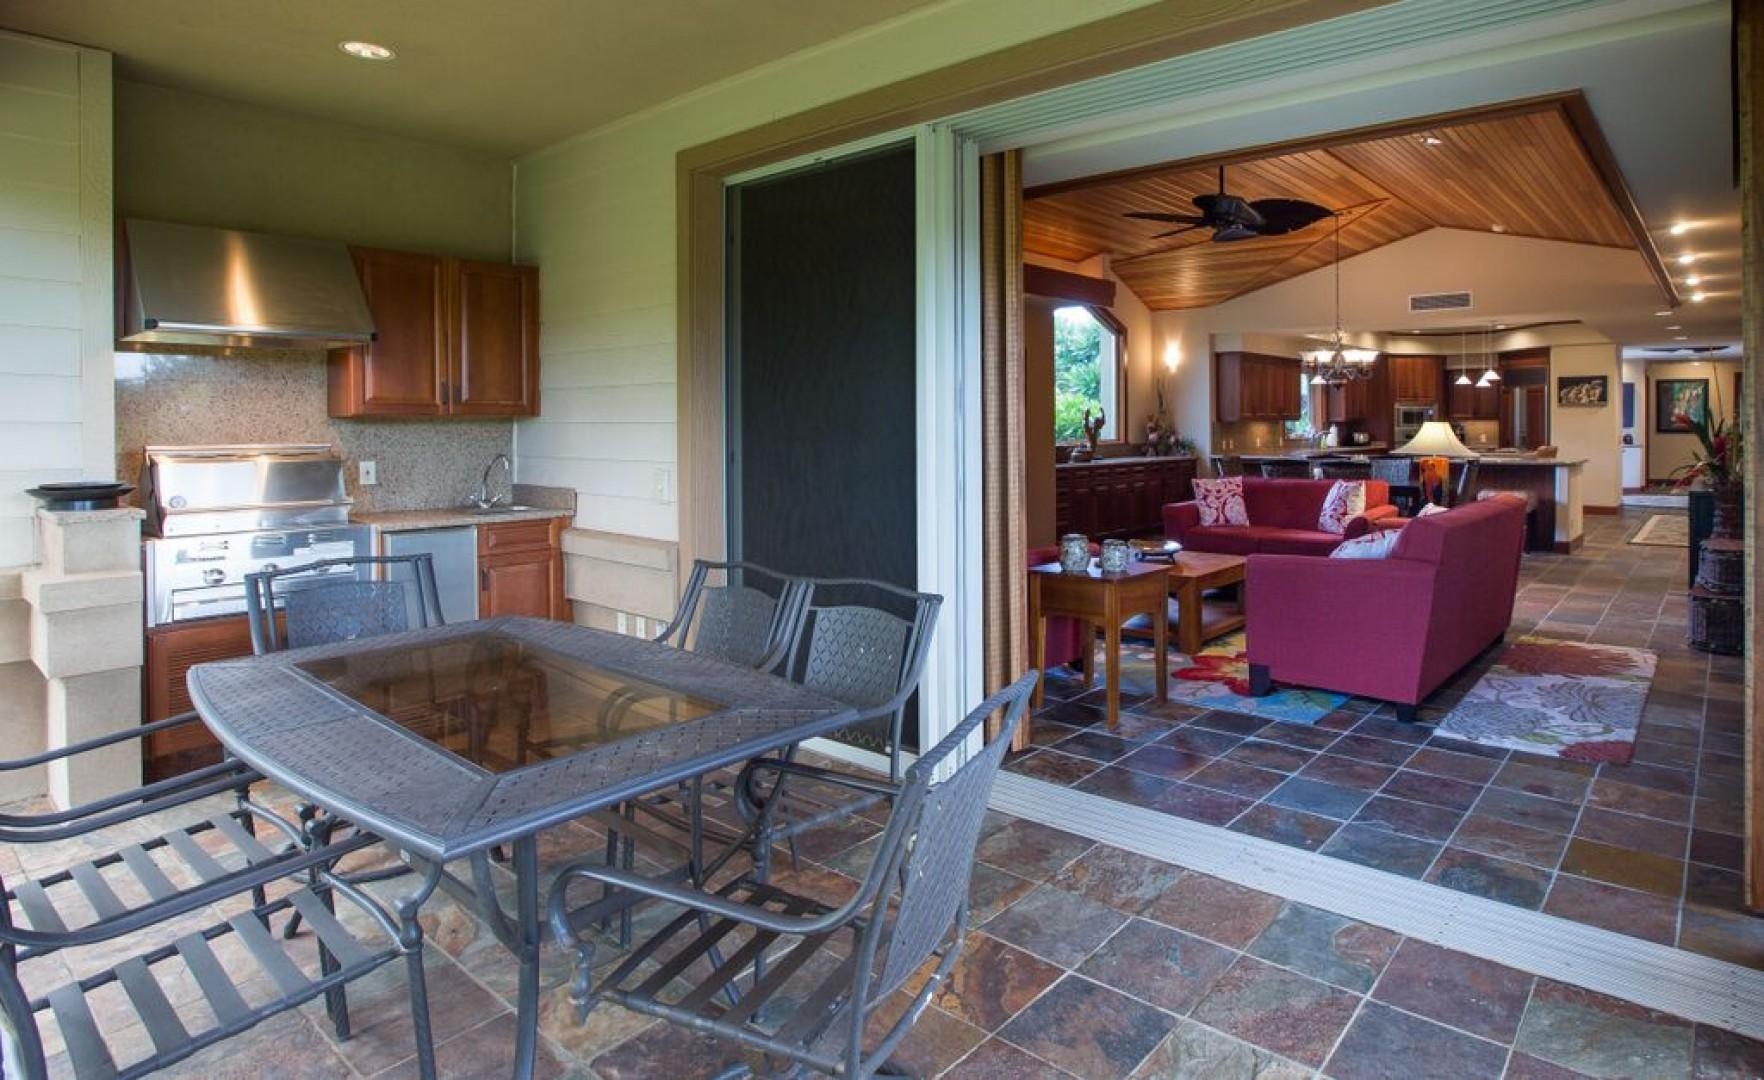 Covered outdoor dining space